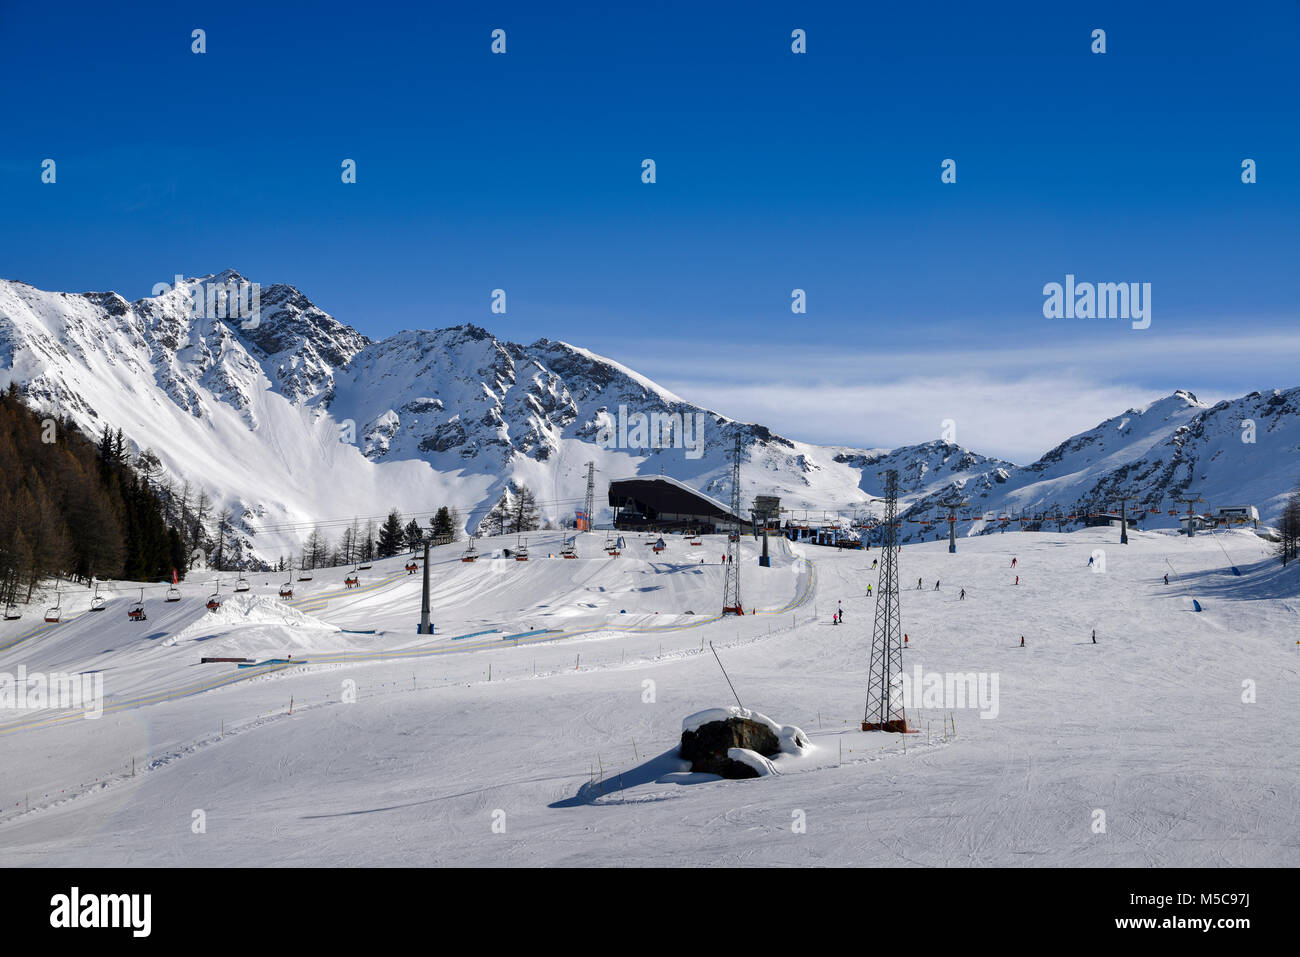 Unidentifiable skiers at ski resort in Pila, Valle d'Aosta, Italy with chairlift and mountain backdrop and copy - Stock Image